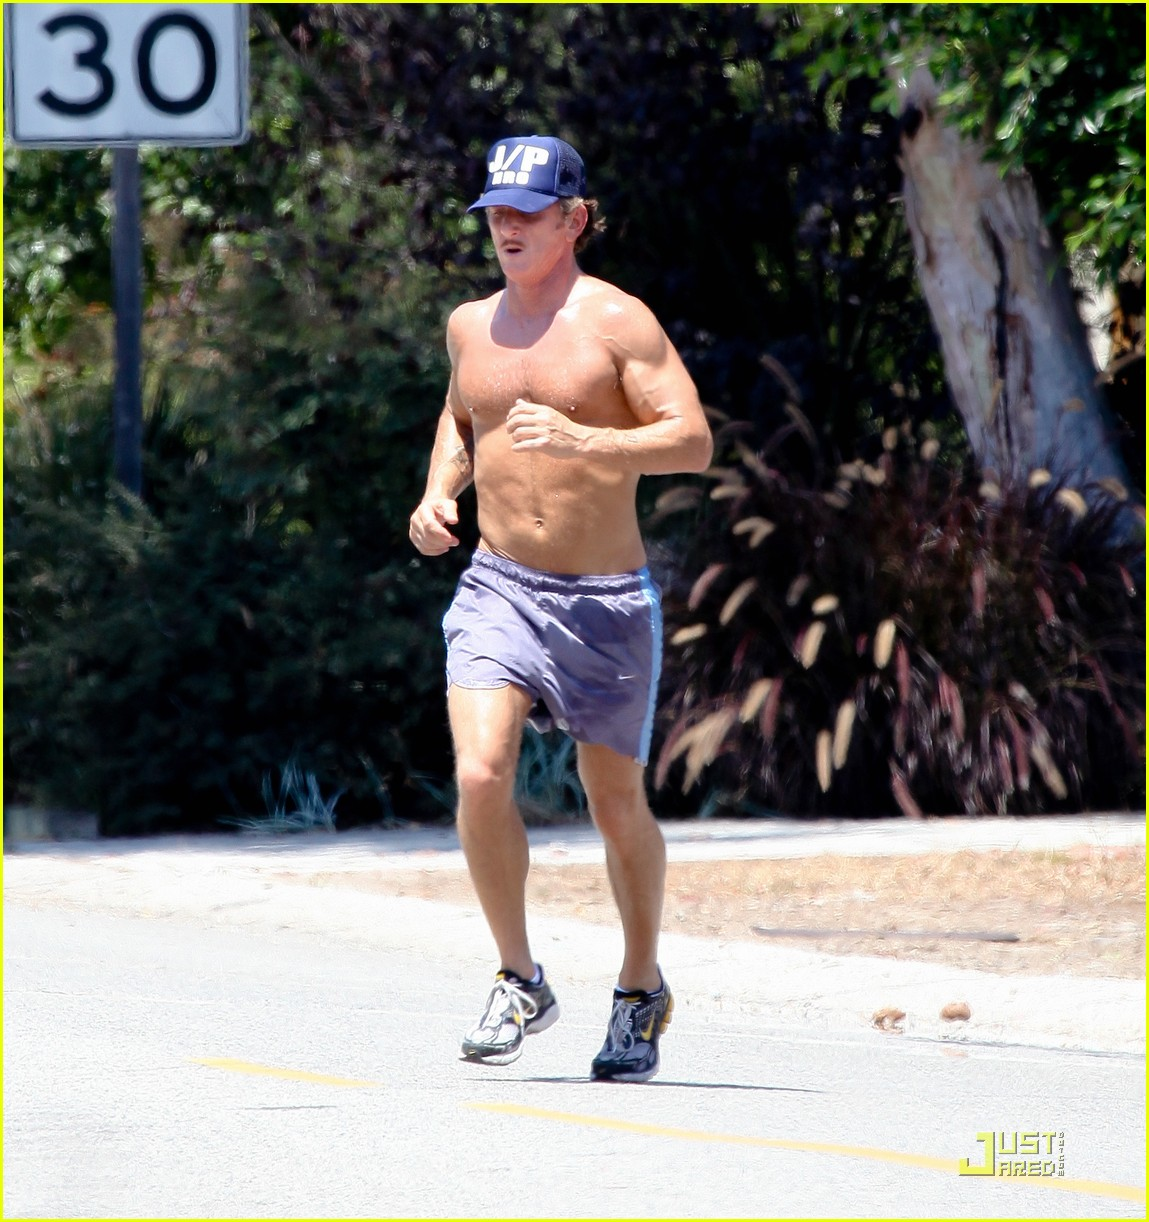 sean penn shirtless jogging with shannon costello 26